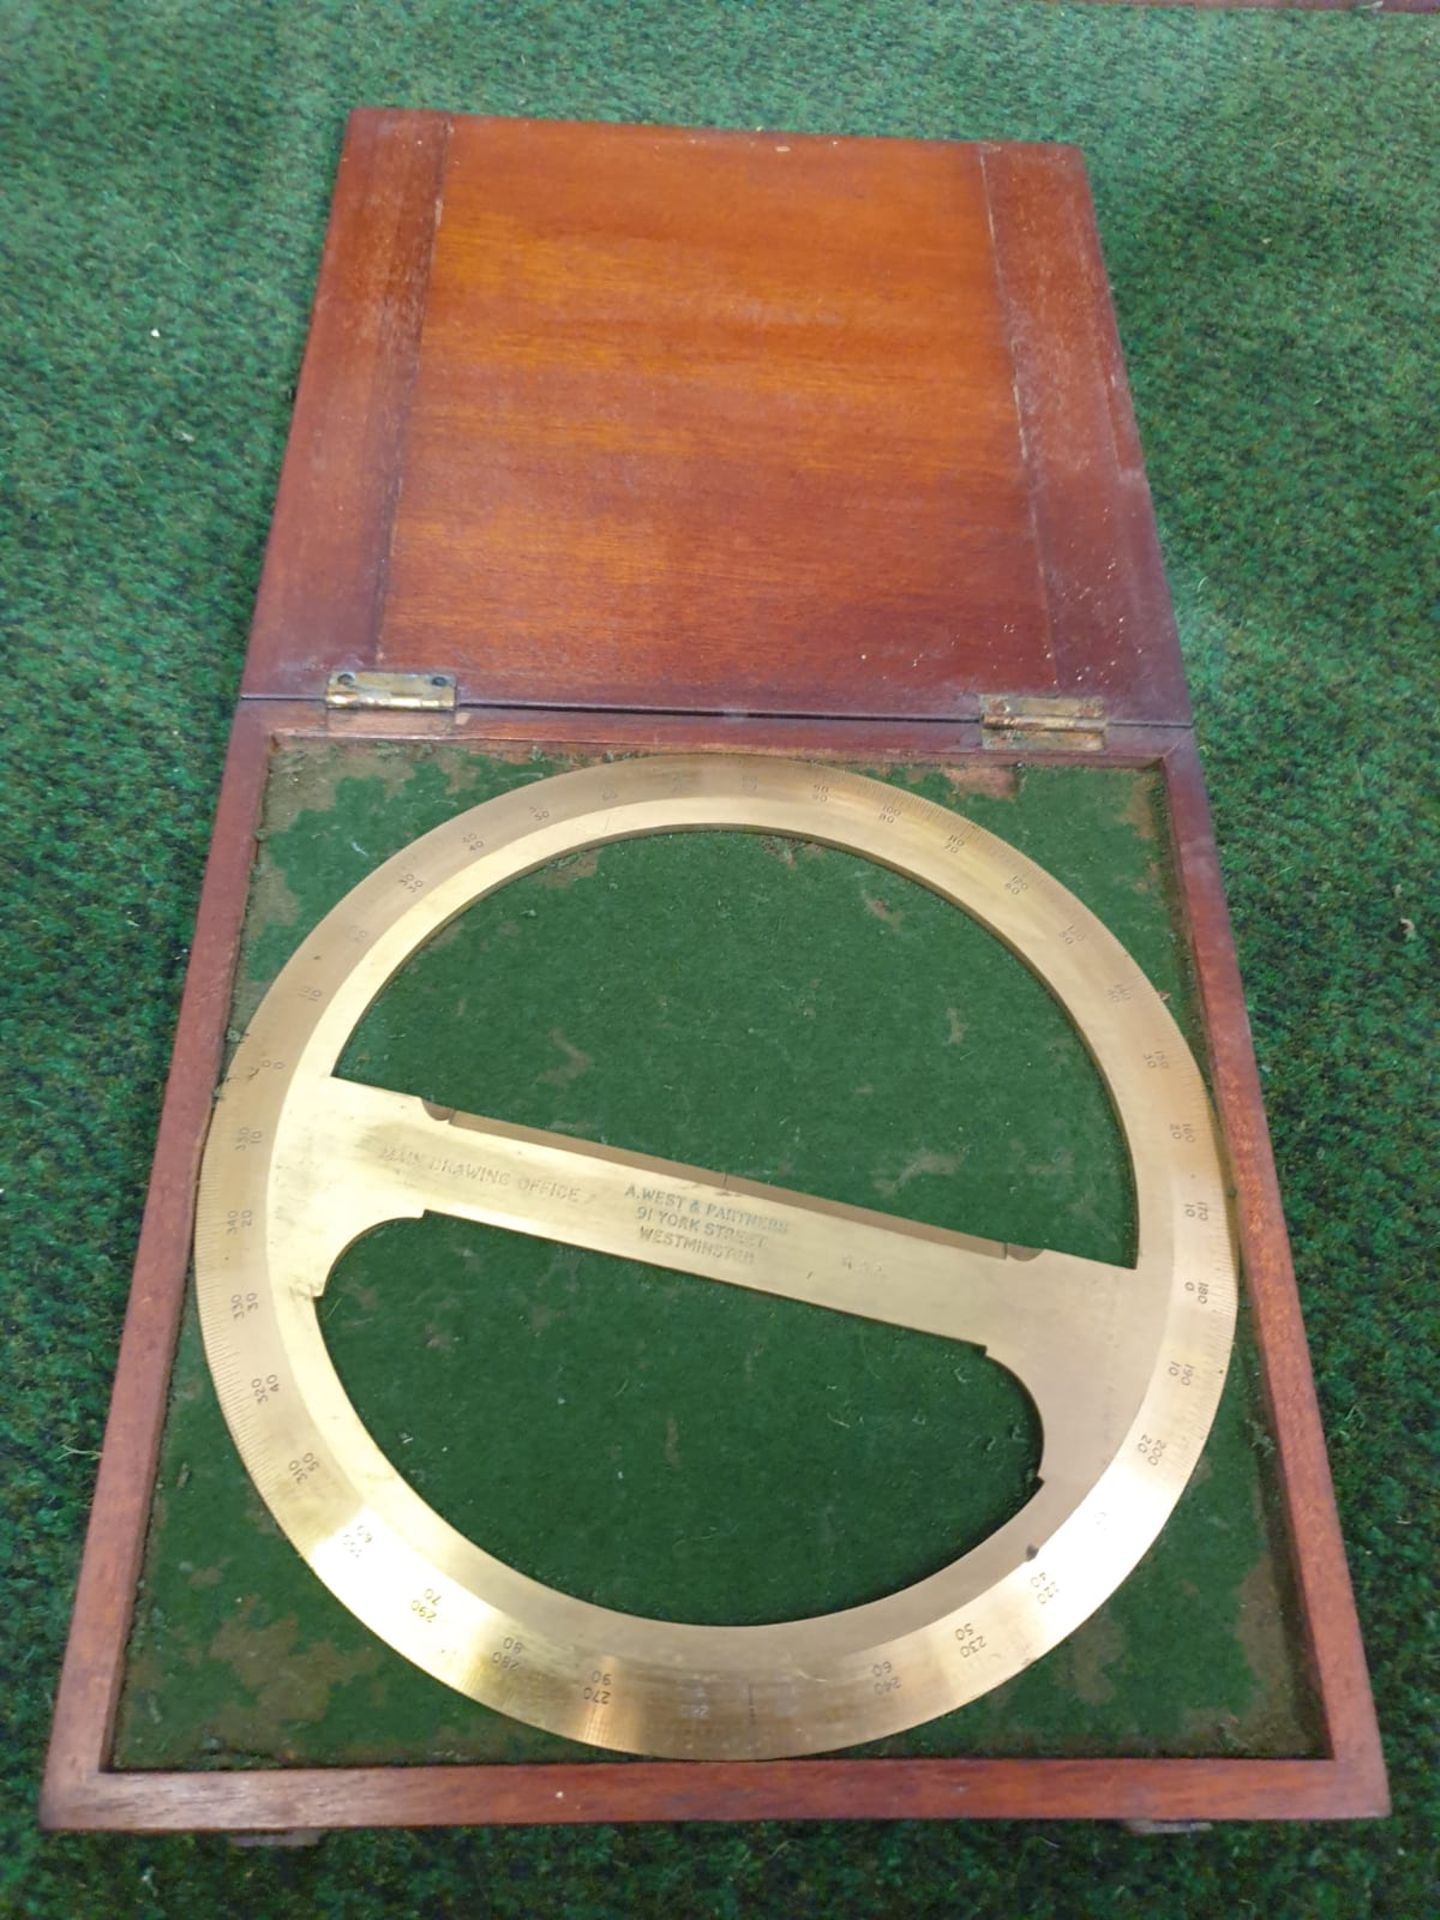 RAF Brass, 360 degree, circular Protractor with crossbar, a scientific drawing instrument in its - Image 2 of 4